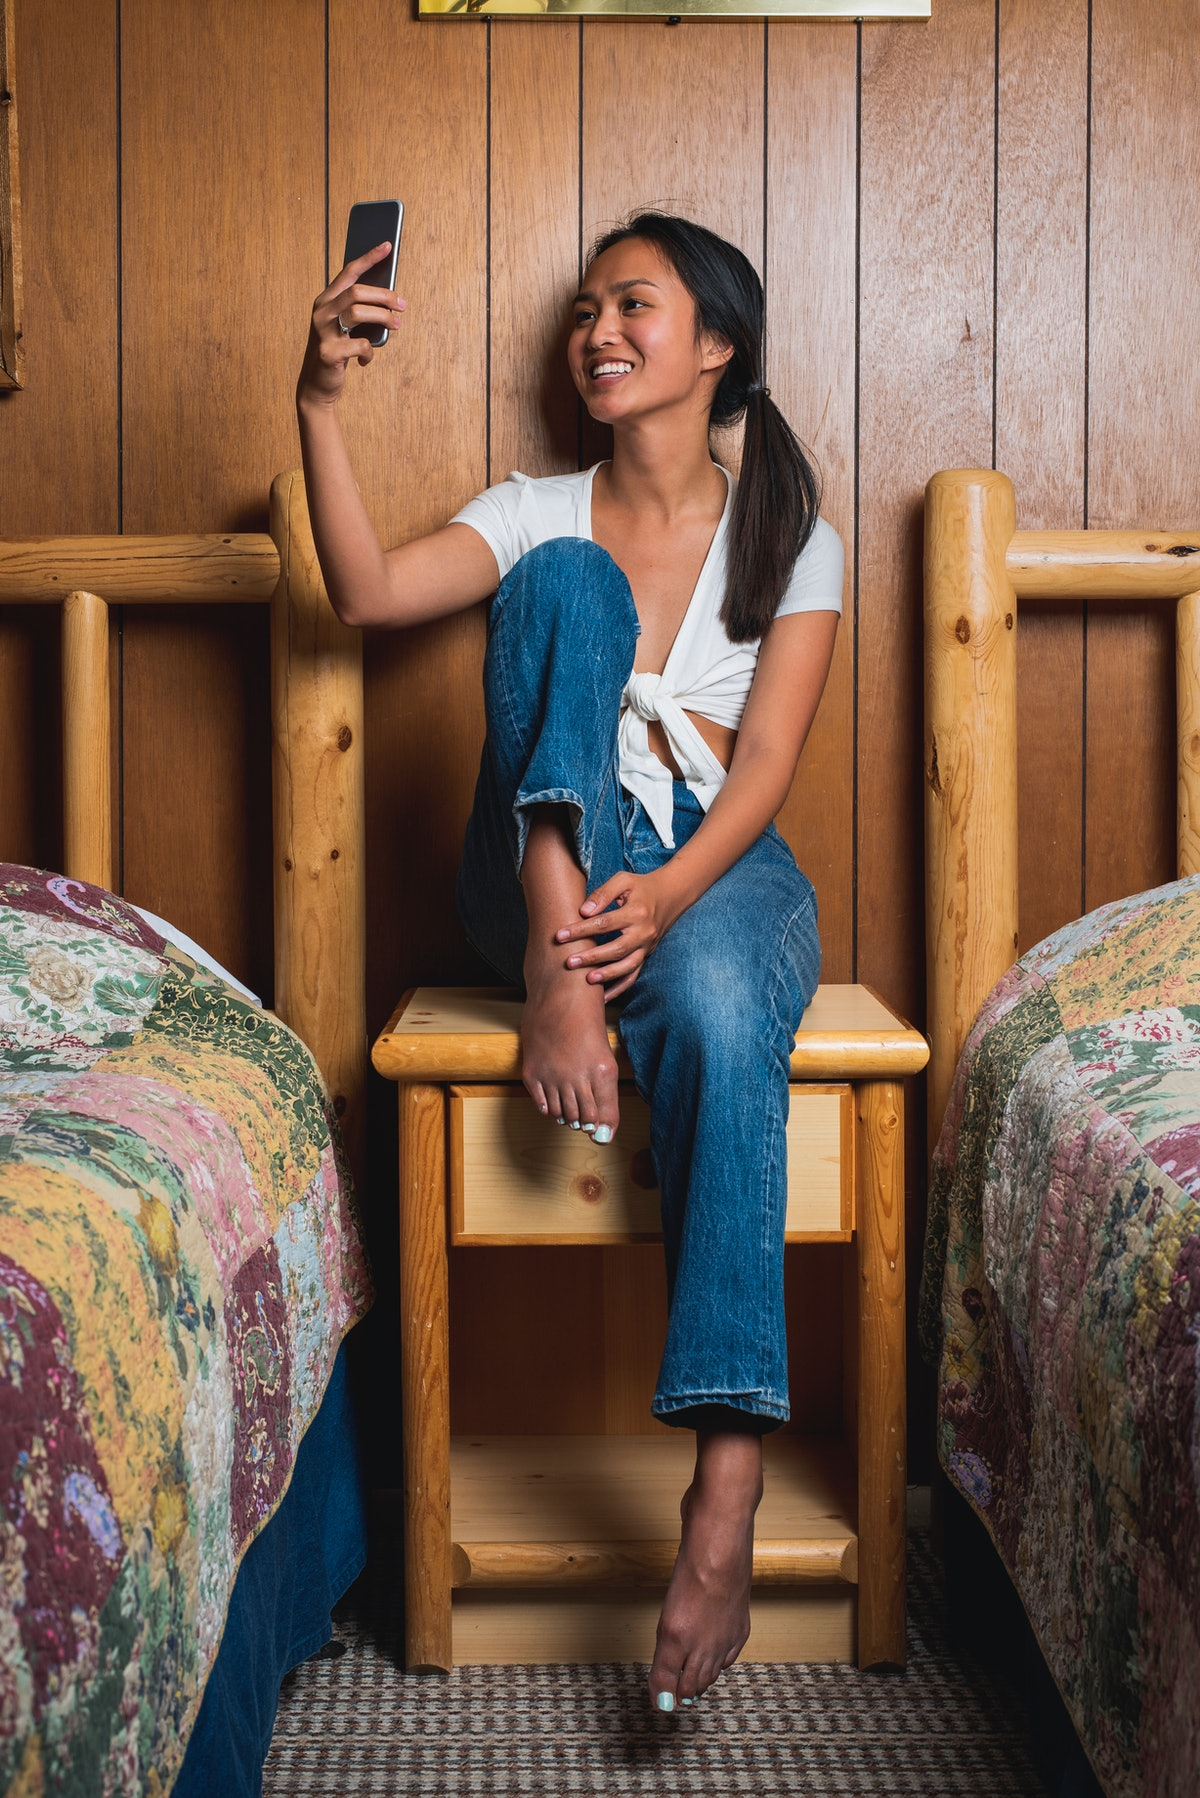 A young Asian woman takes a selfie on her phone while sitting on a wooden nightstand in between two beds during a fall staycation.